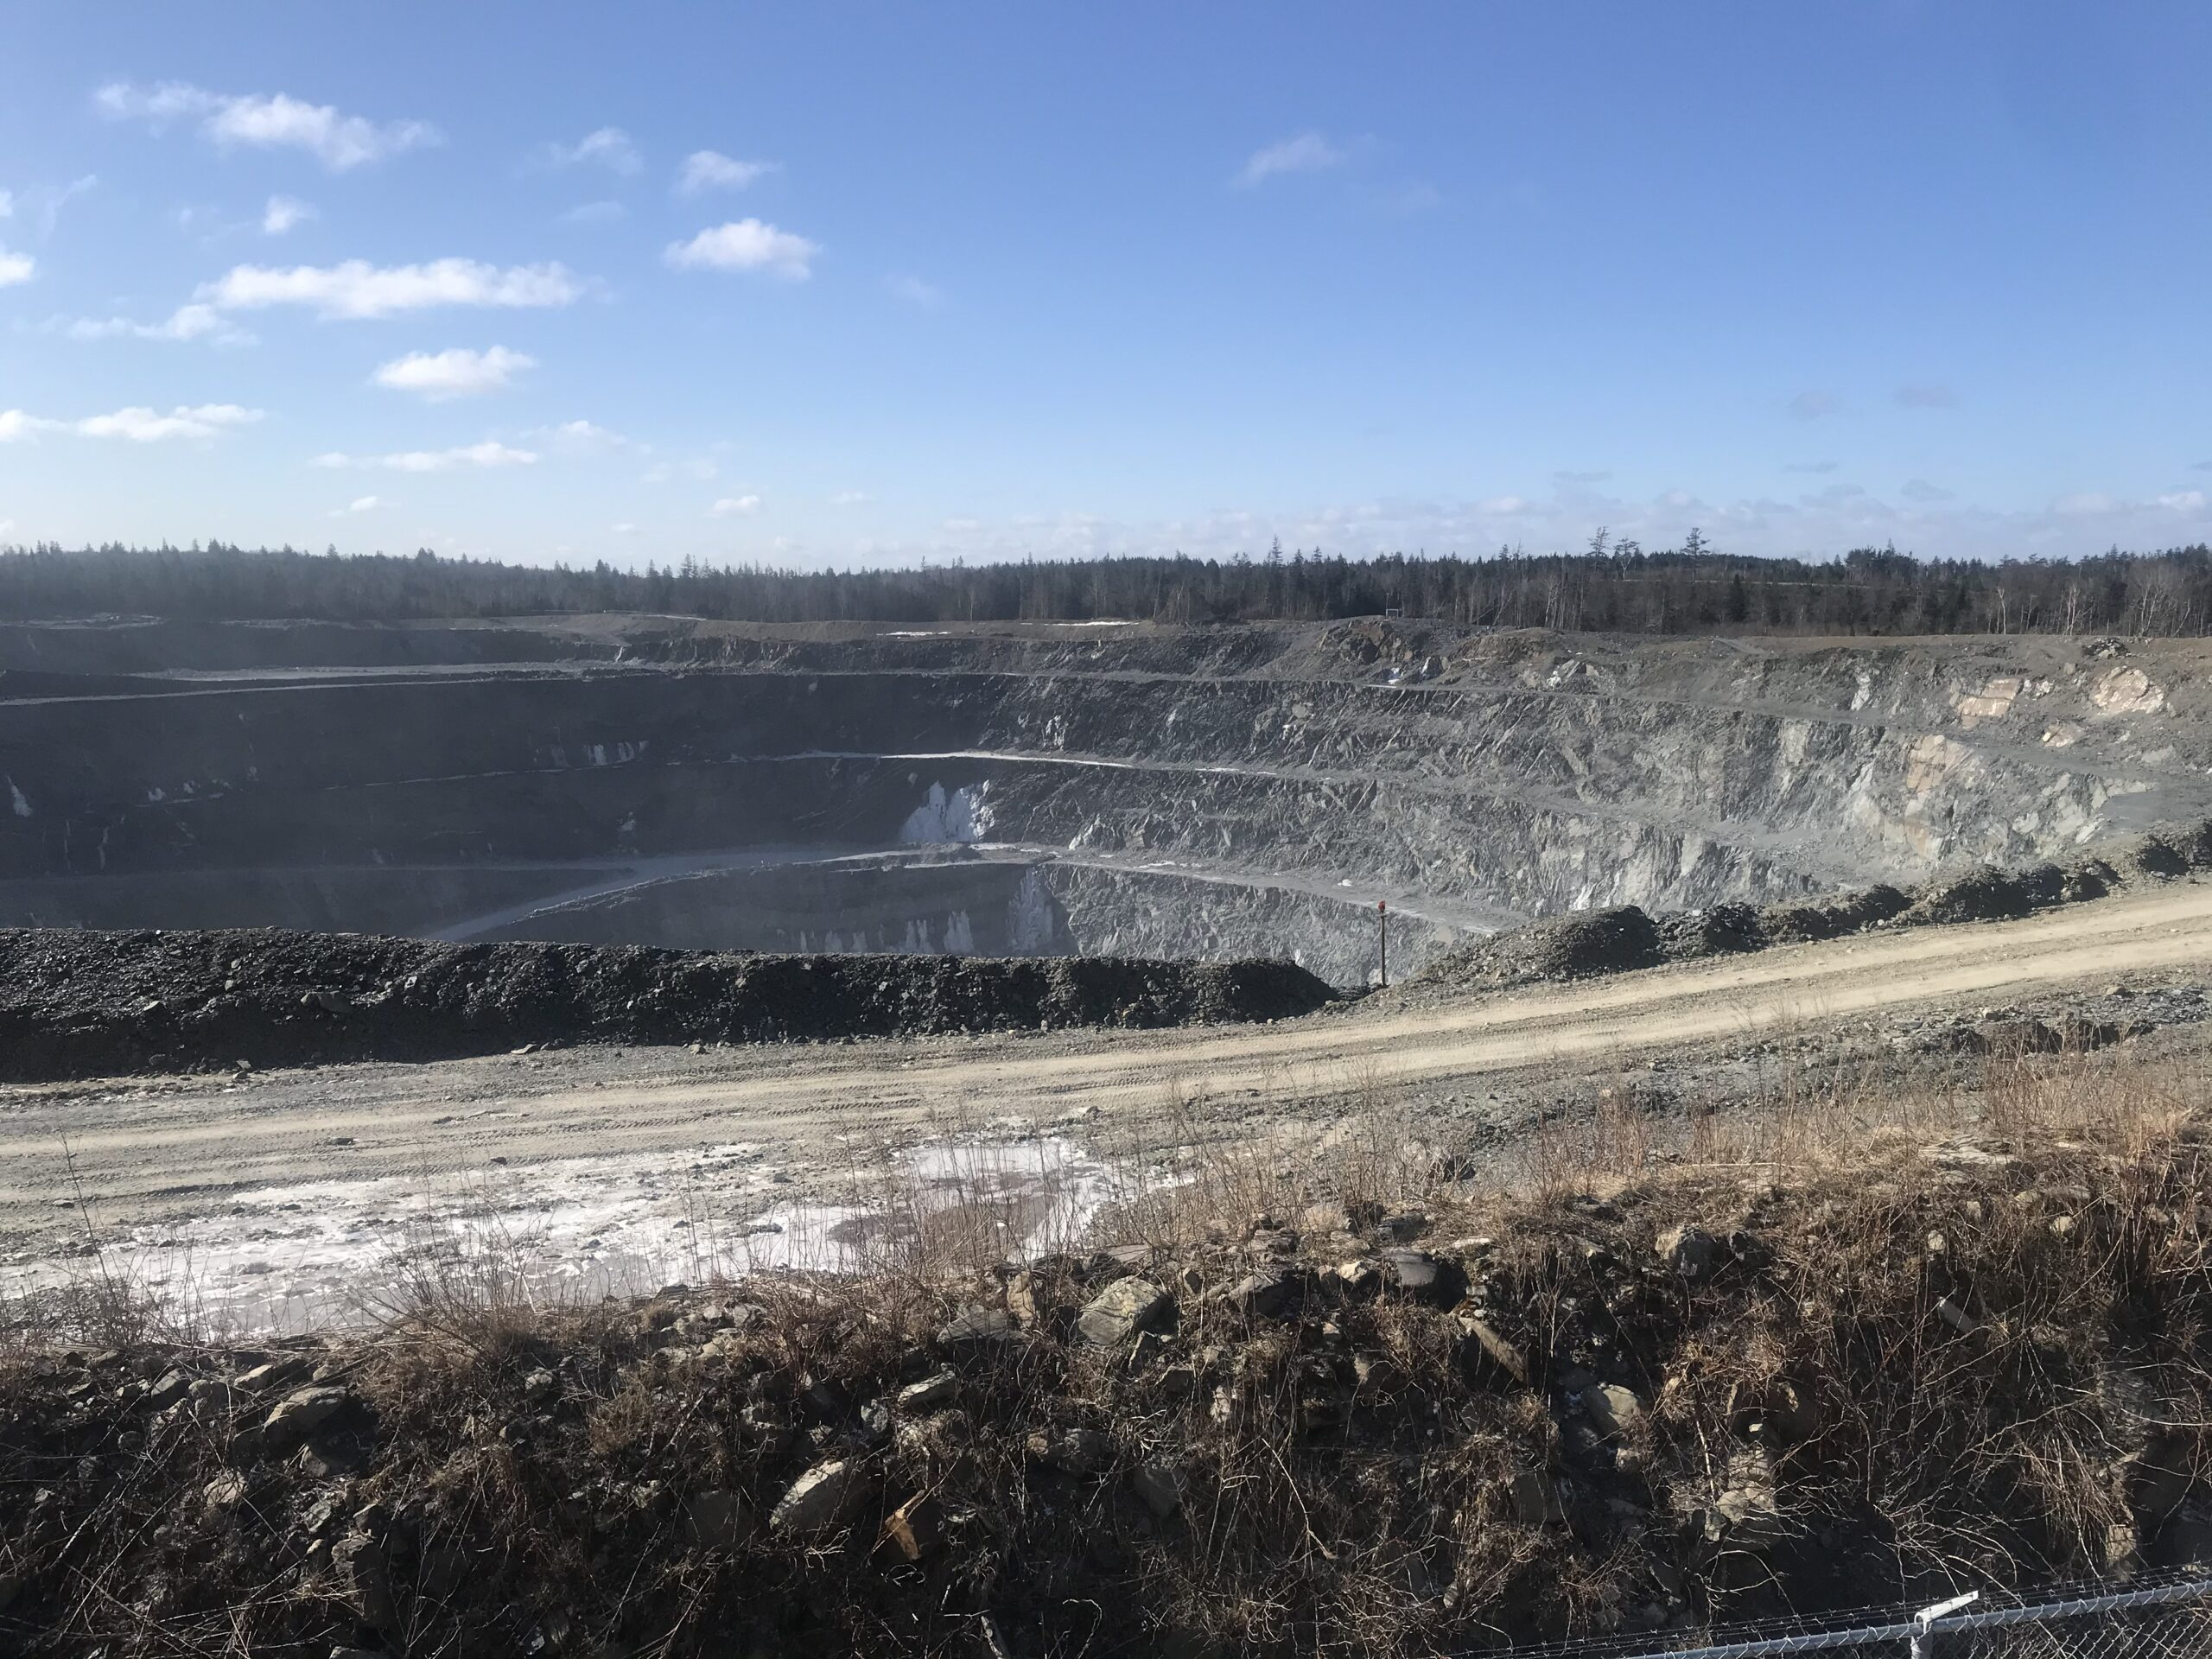 A photo of the Touquoy gold mine pit, taken from over a chain link fence on a sunny day. It's massive. In the far distance you can see a line of what's left of the trees. The pit is a big grey hole, with three connected ledges running around the inside of the pit.